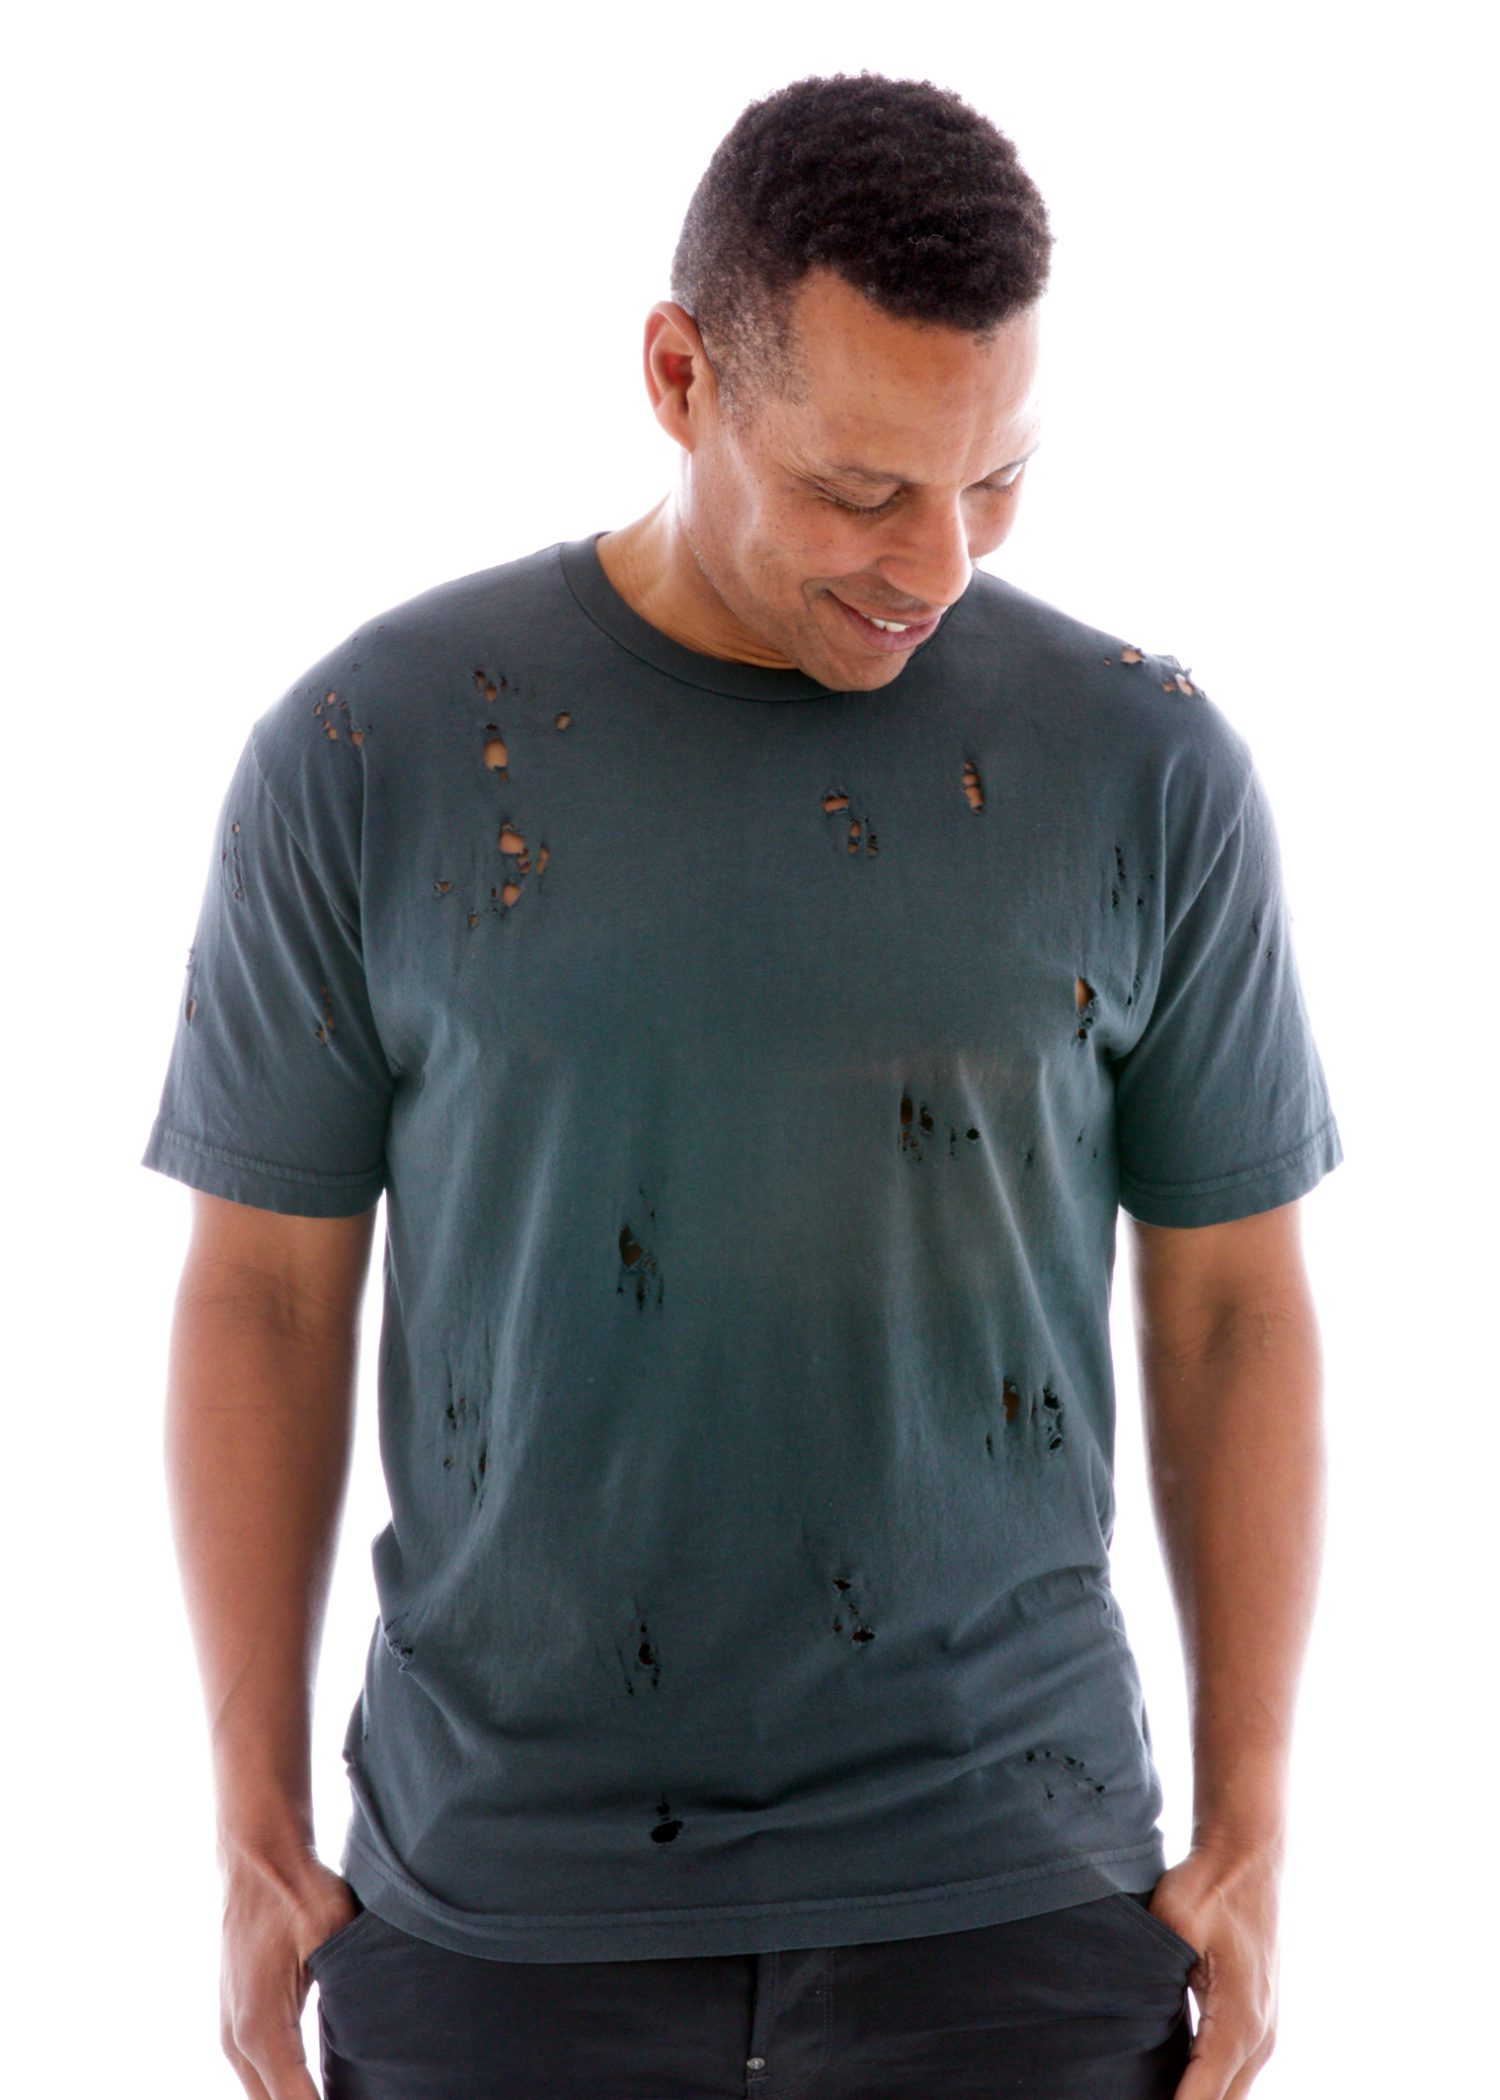 Destroyed Crew Short Sleeve T-Shirt Front View